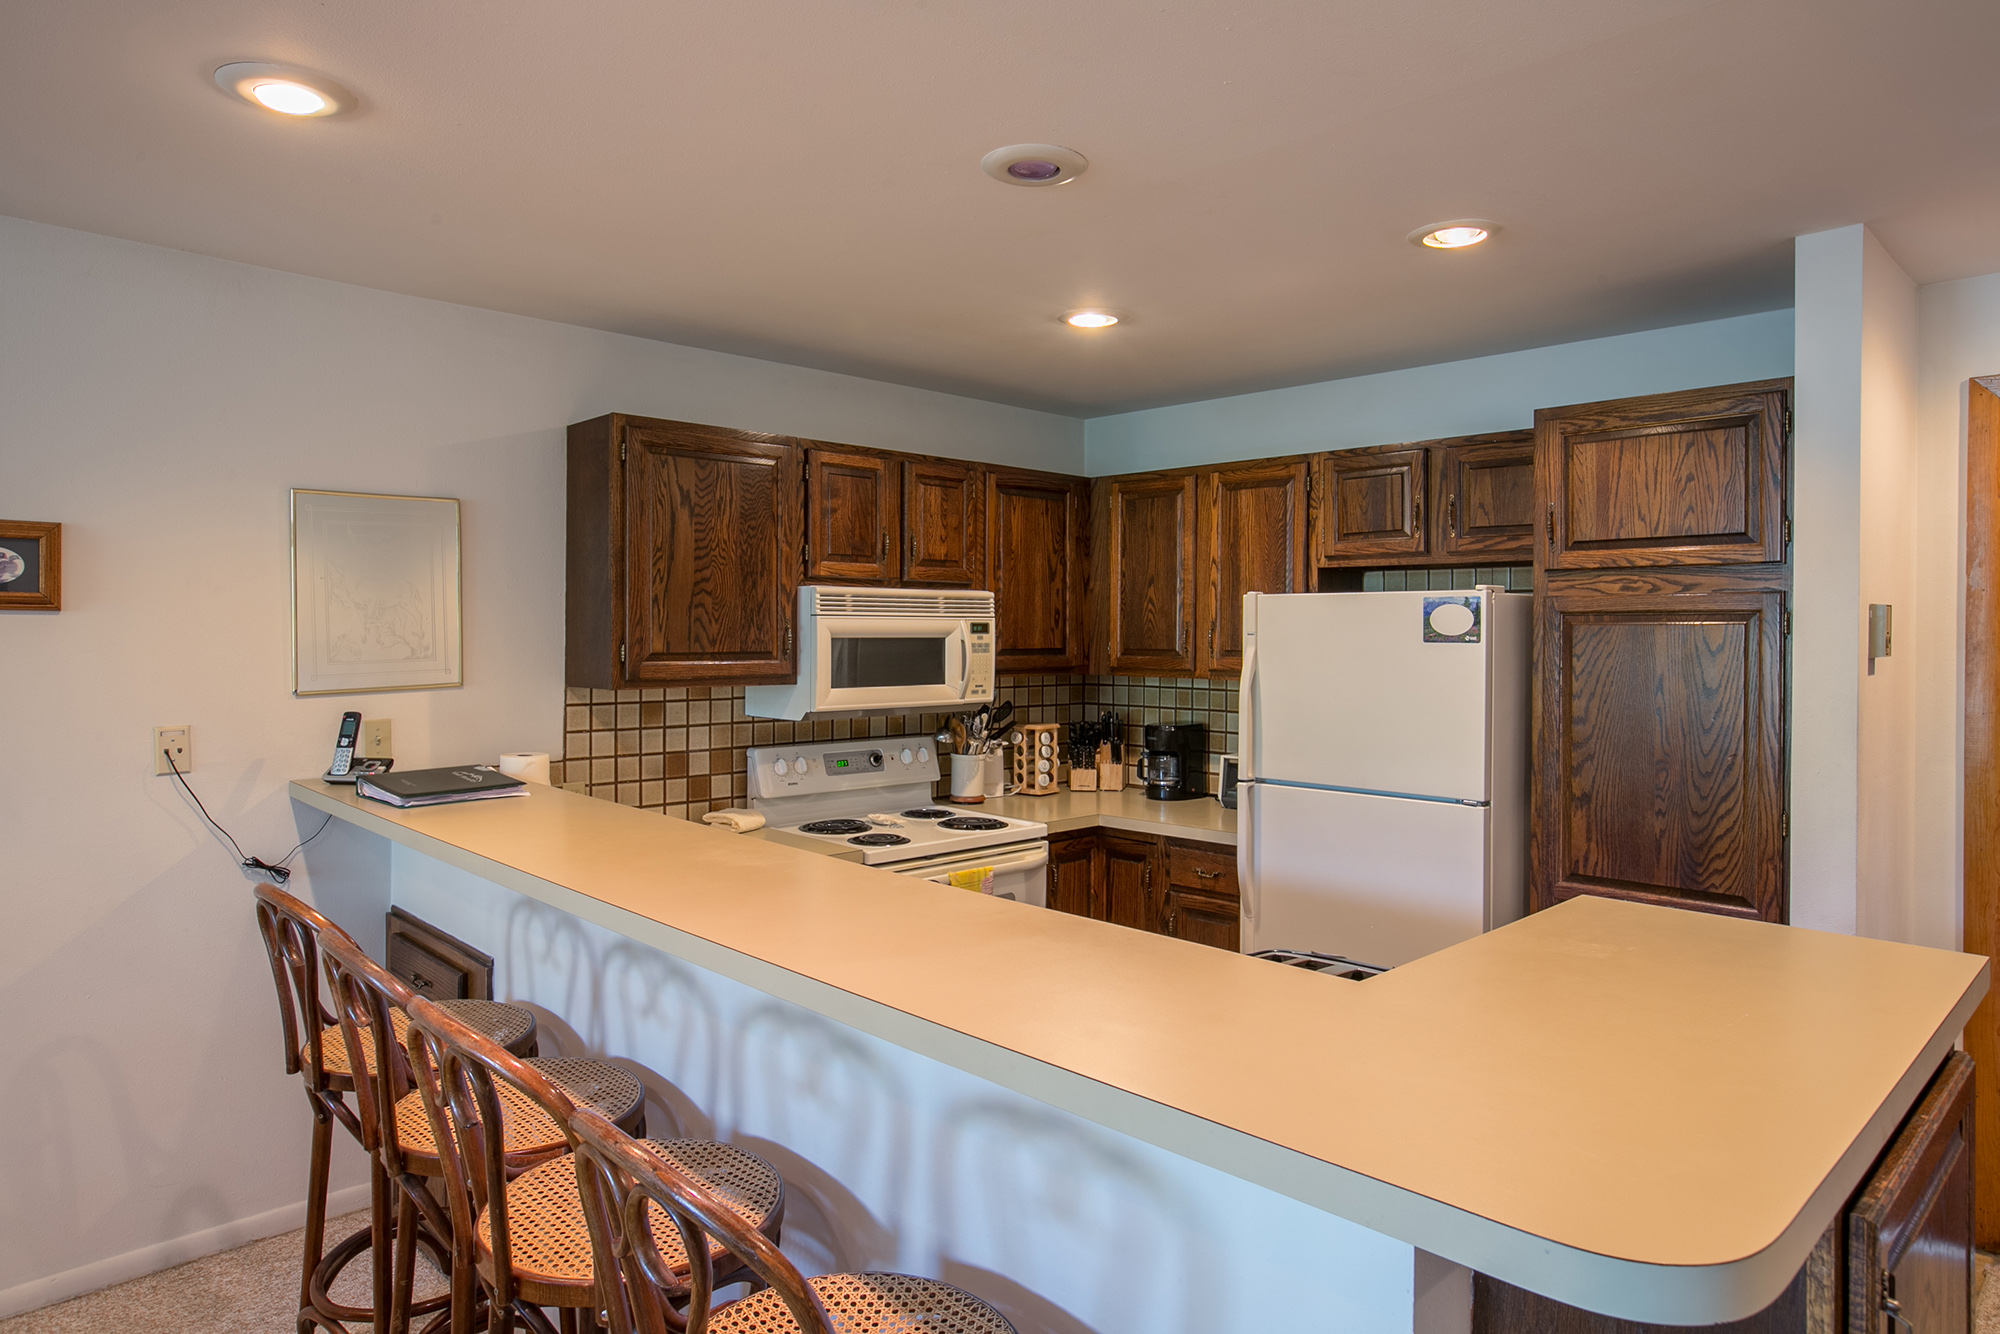 vail realty - stone creek #206 3-bed 3-bath vacation rentals in